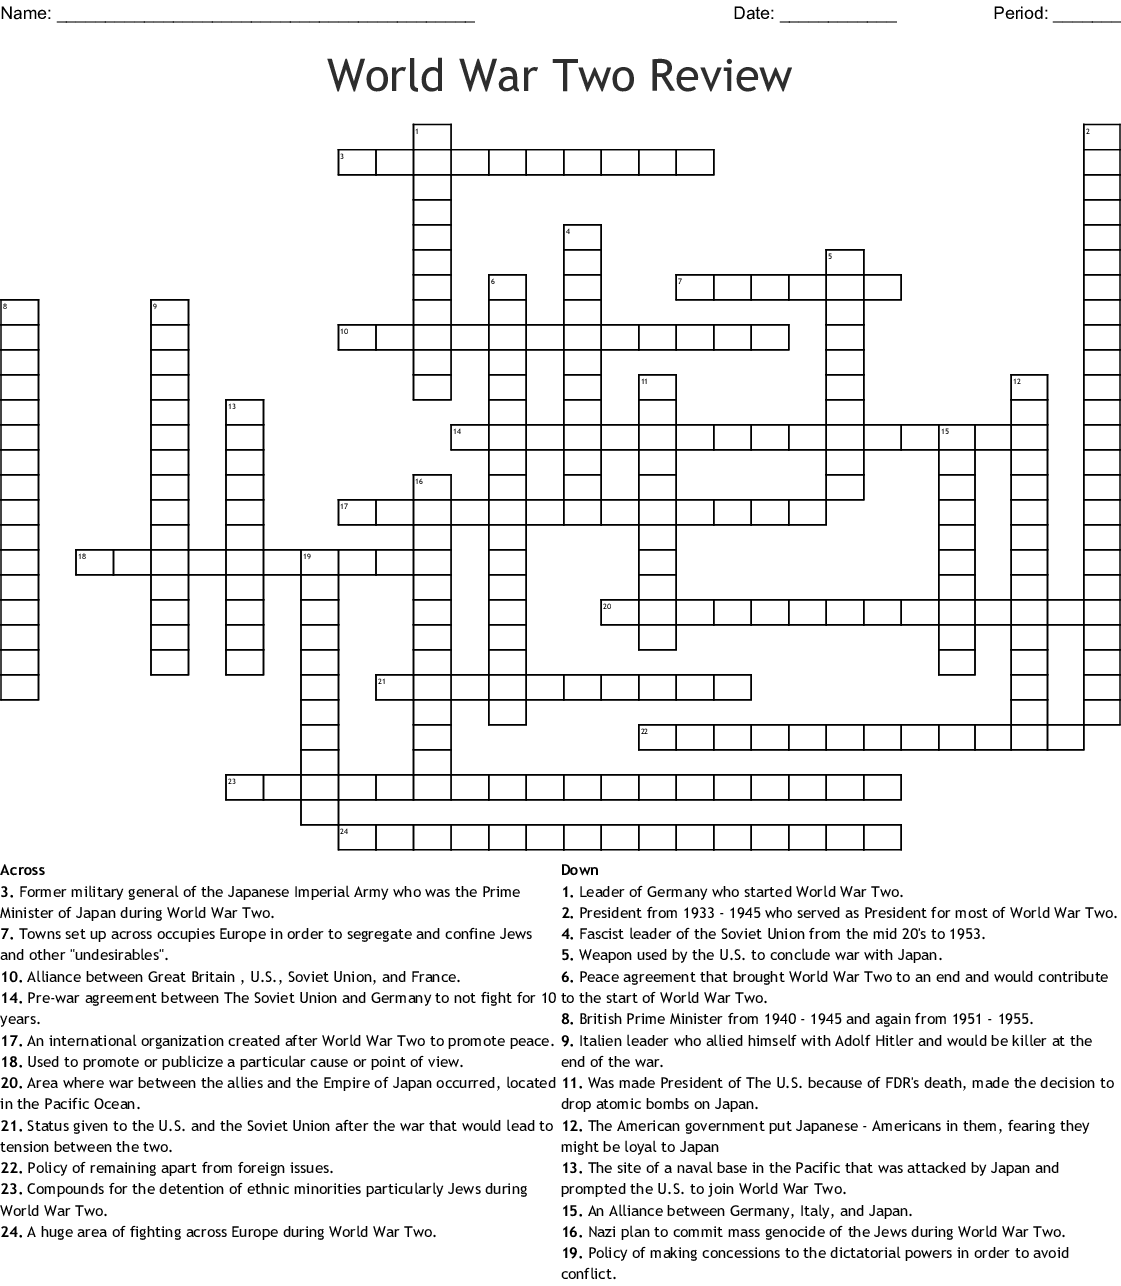 World War Two Review Crossword